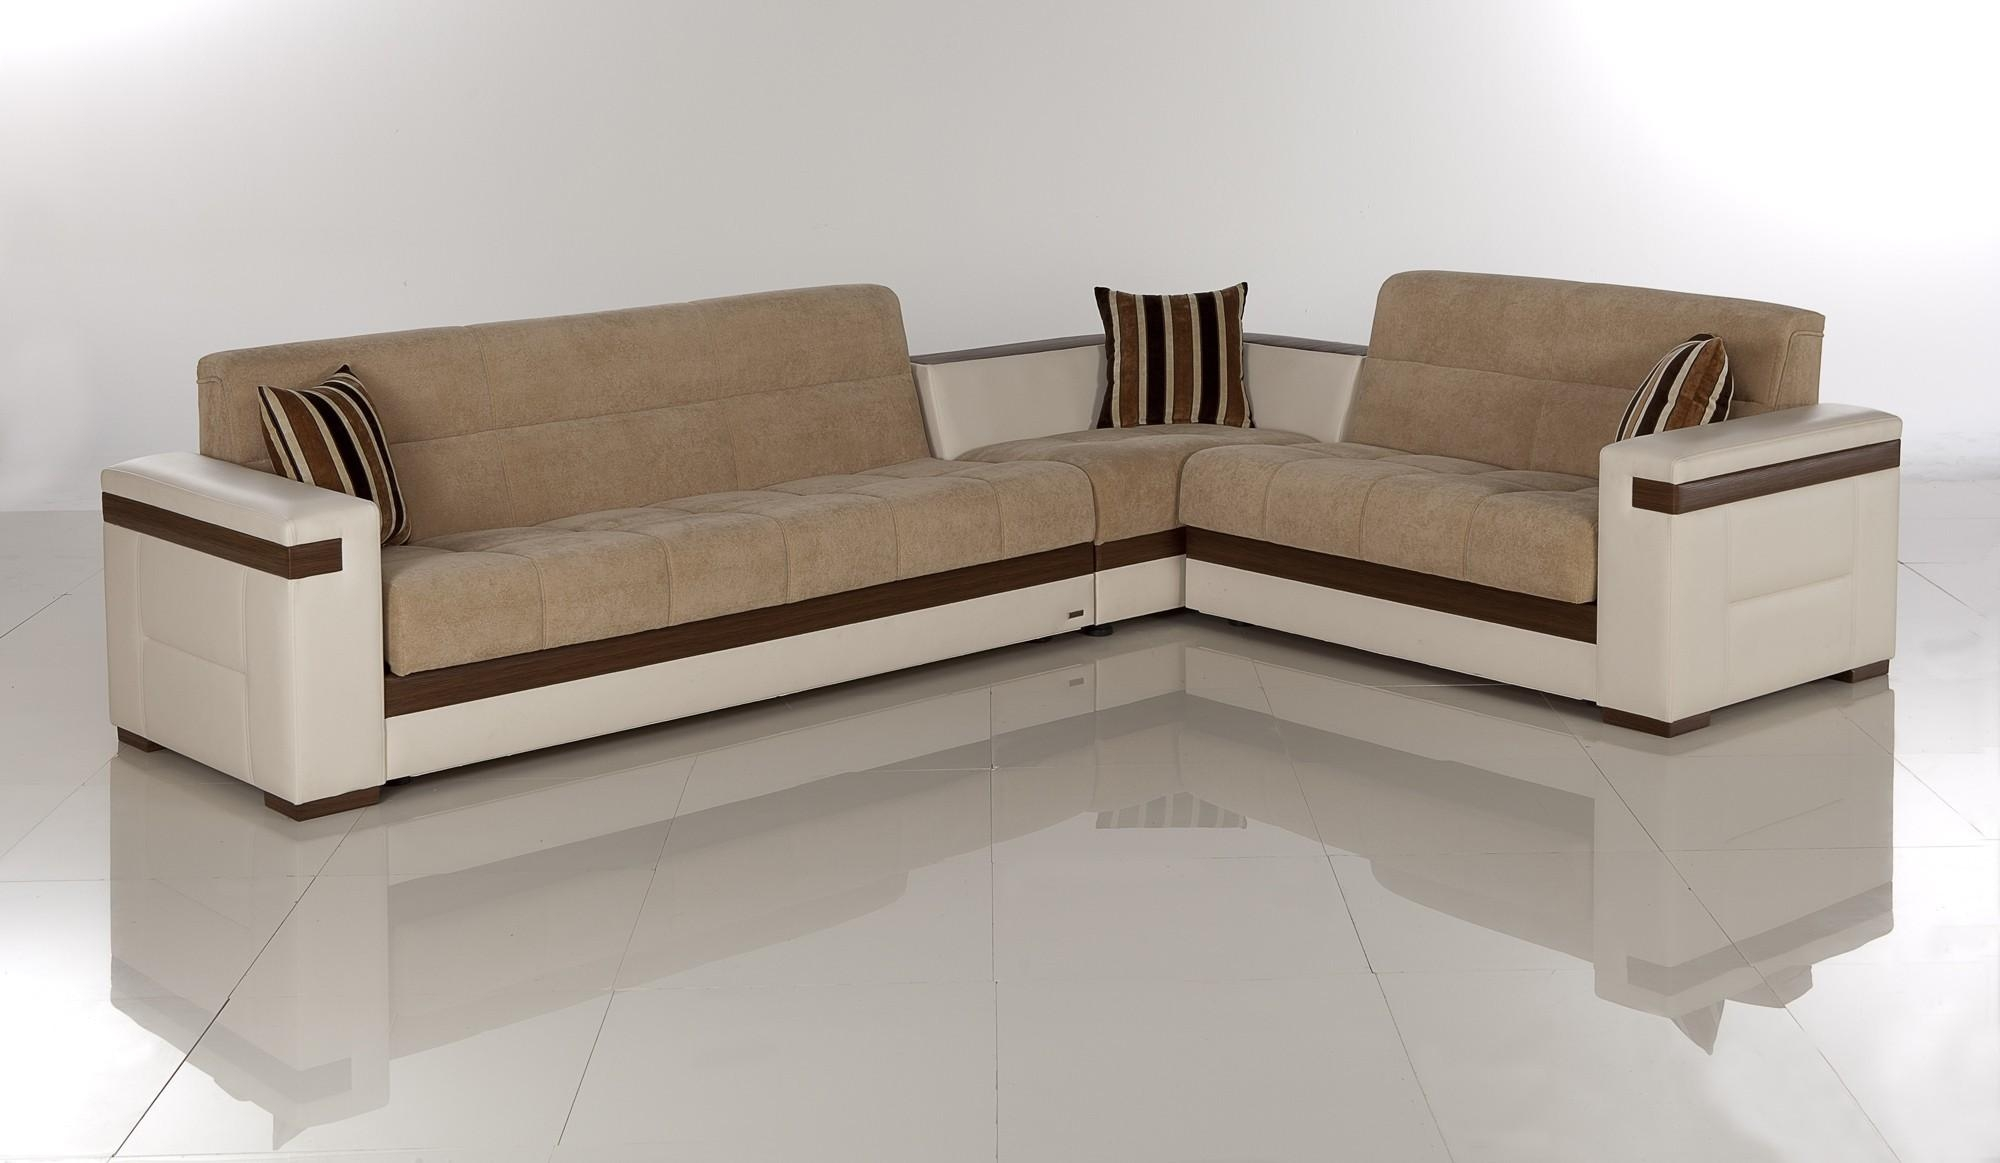 Furniture: Wondrous Alluring Sectional With Sleeper For Home Regarding Corner Sleeper Sofas (Image 9 of 20)